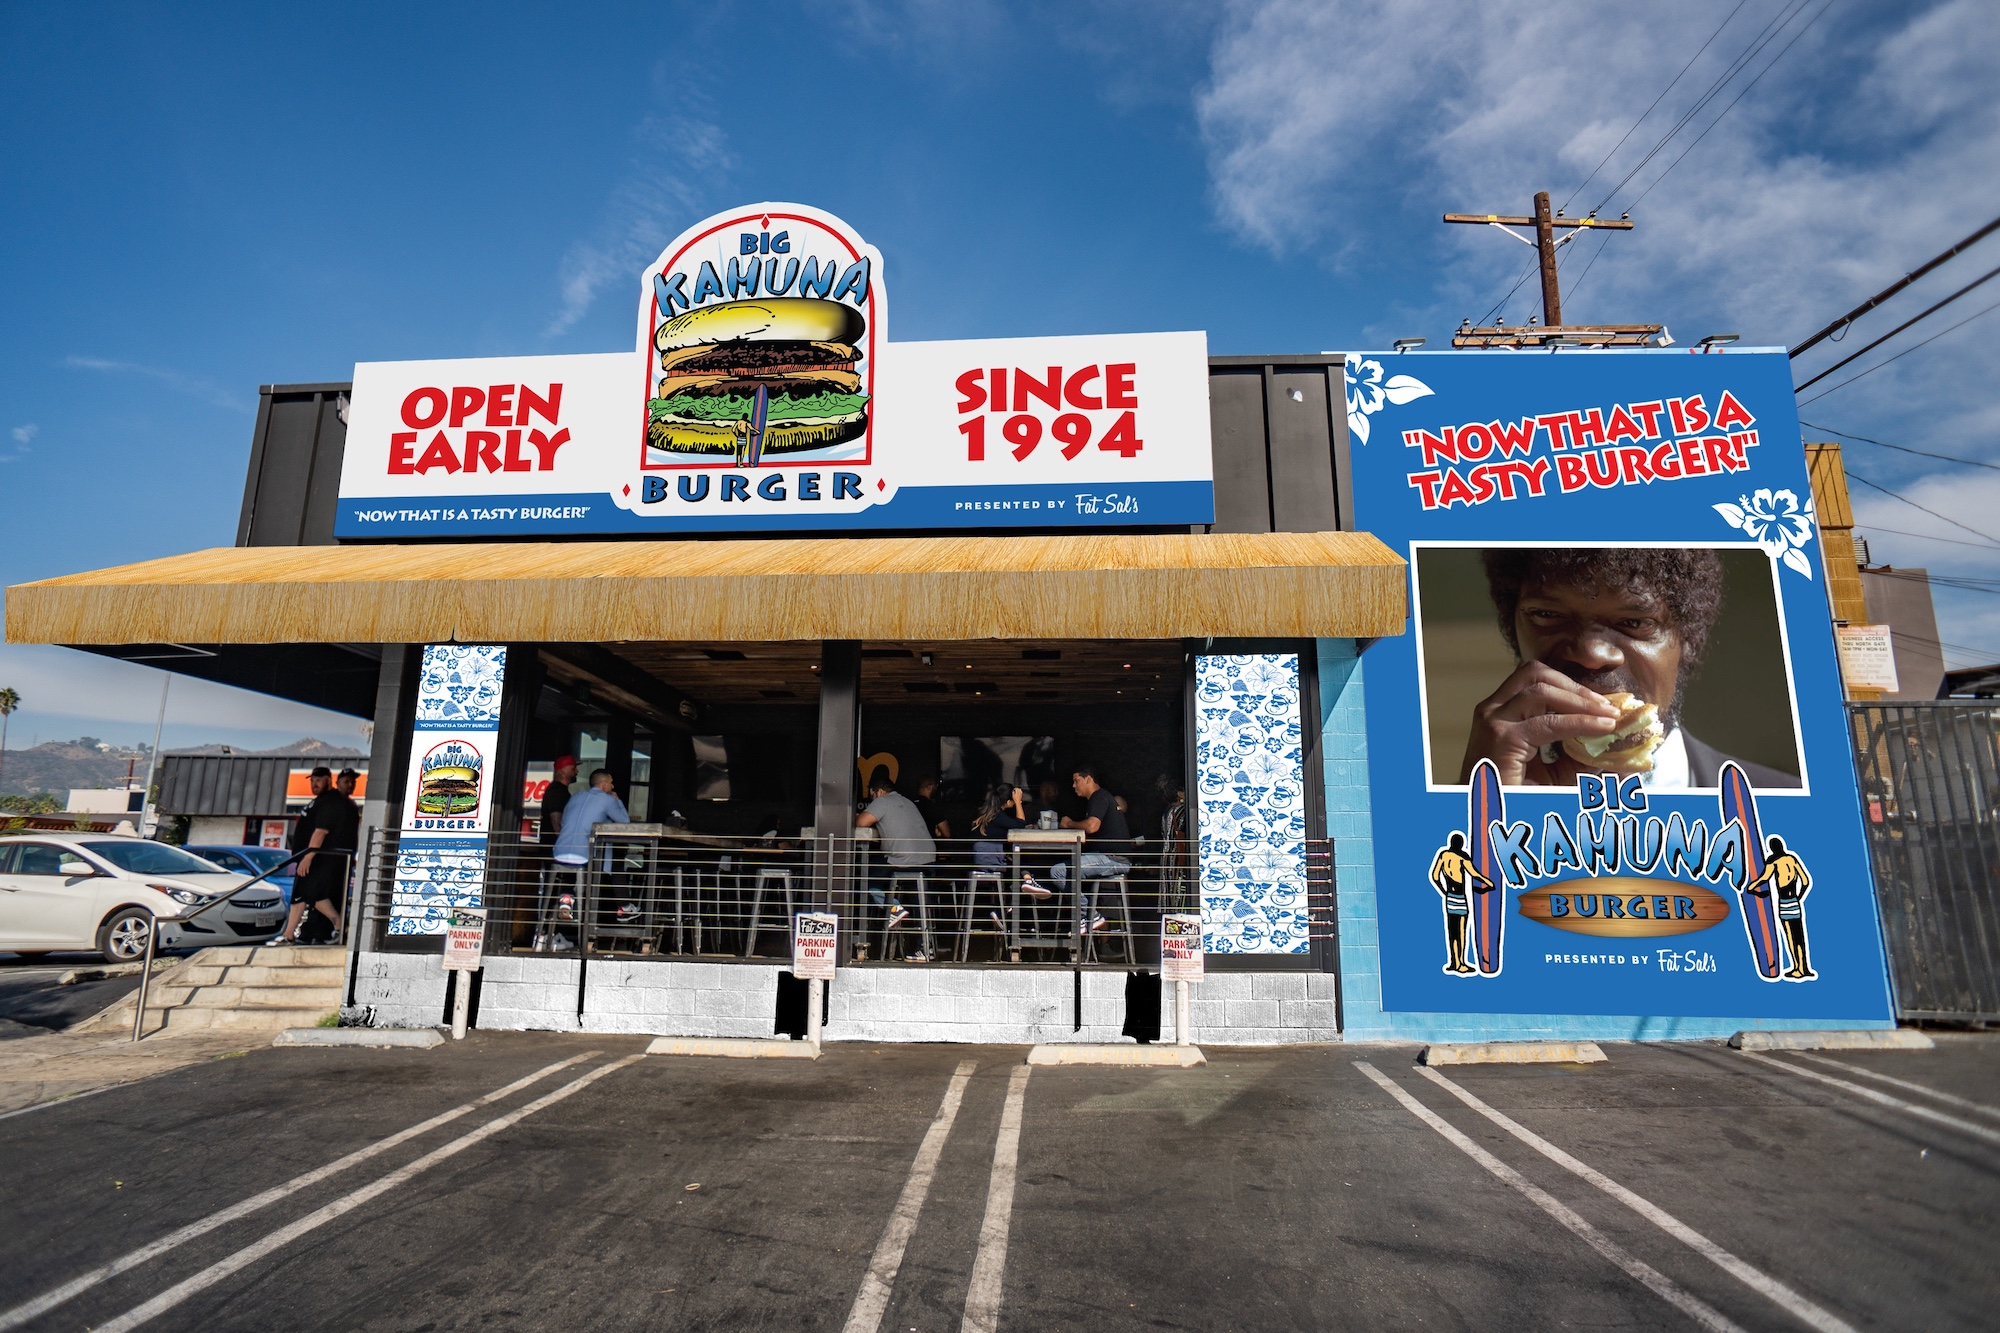 A burger restaurant transformed into Big Kahuna Burger from the movie Pulp Fiction.